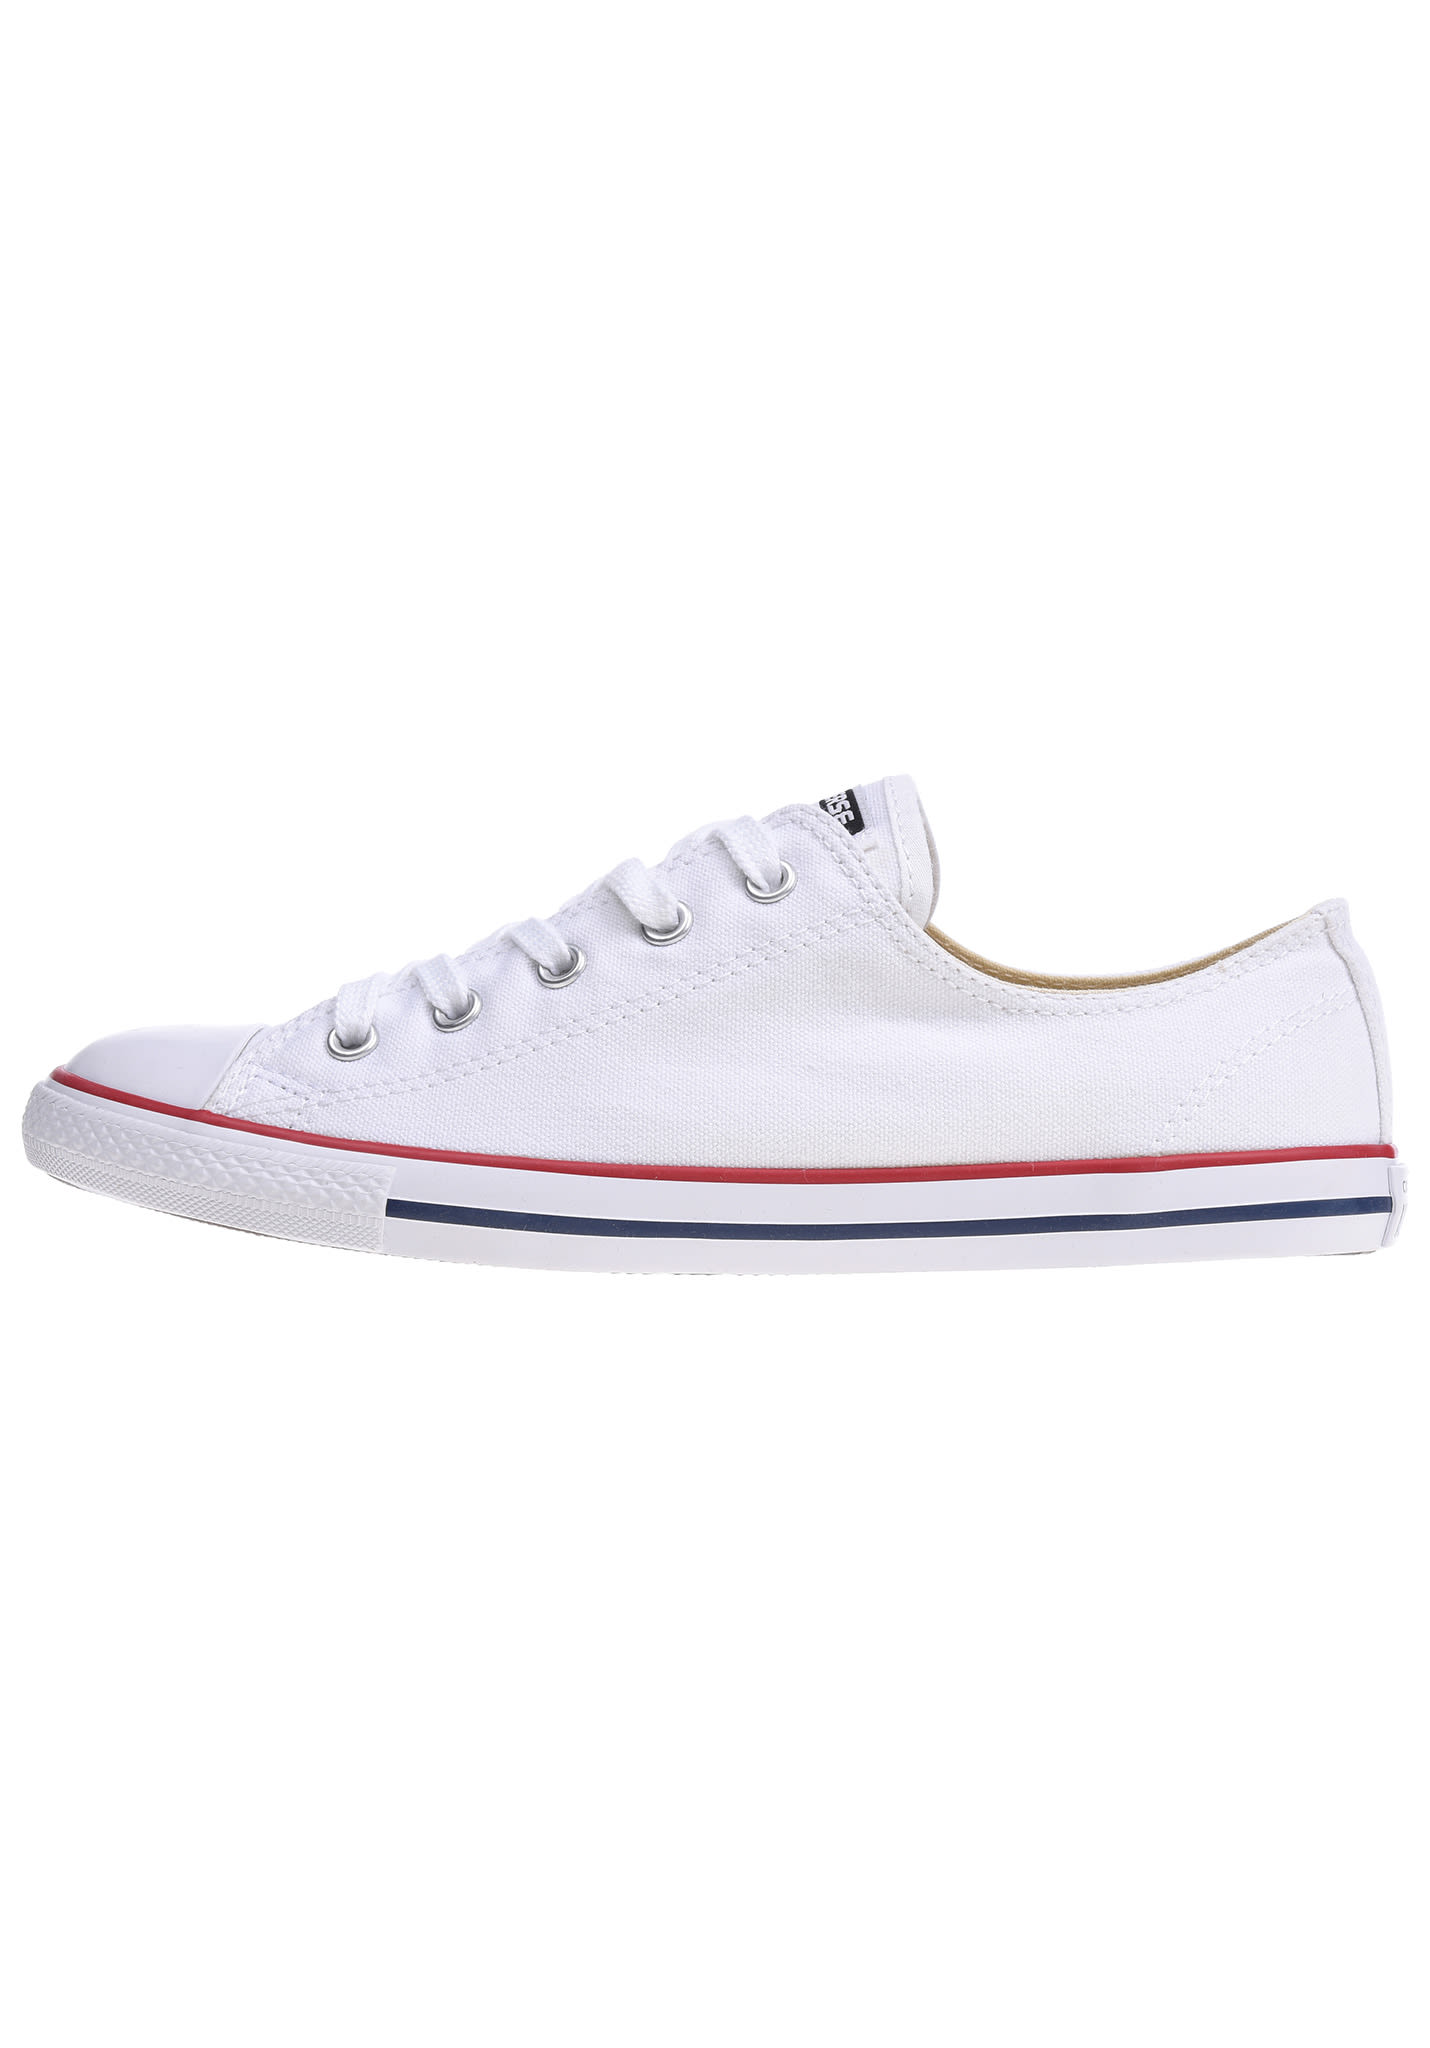 Converse CT All Star Dainty OX Damen-Sneaker Casino/Gold/White 40 SE5NVZrXr